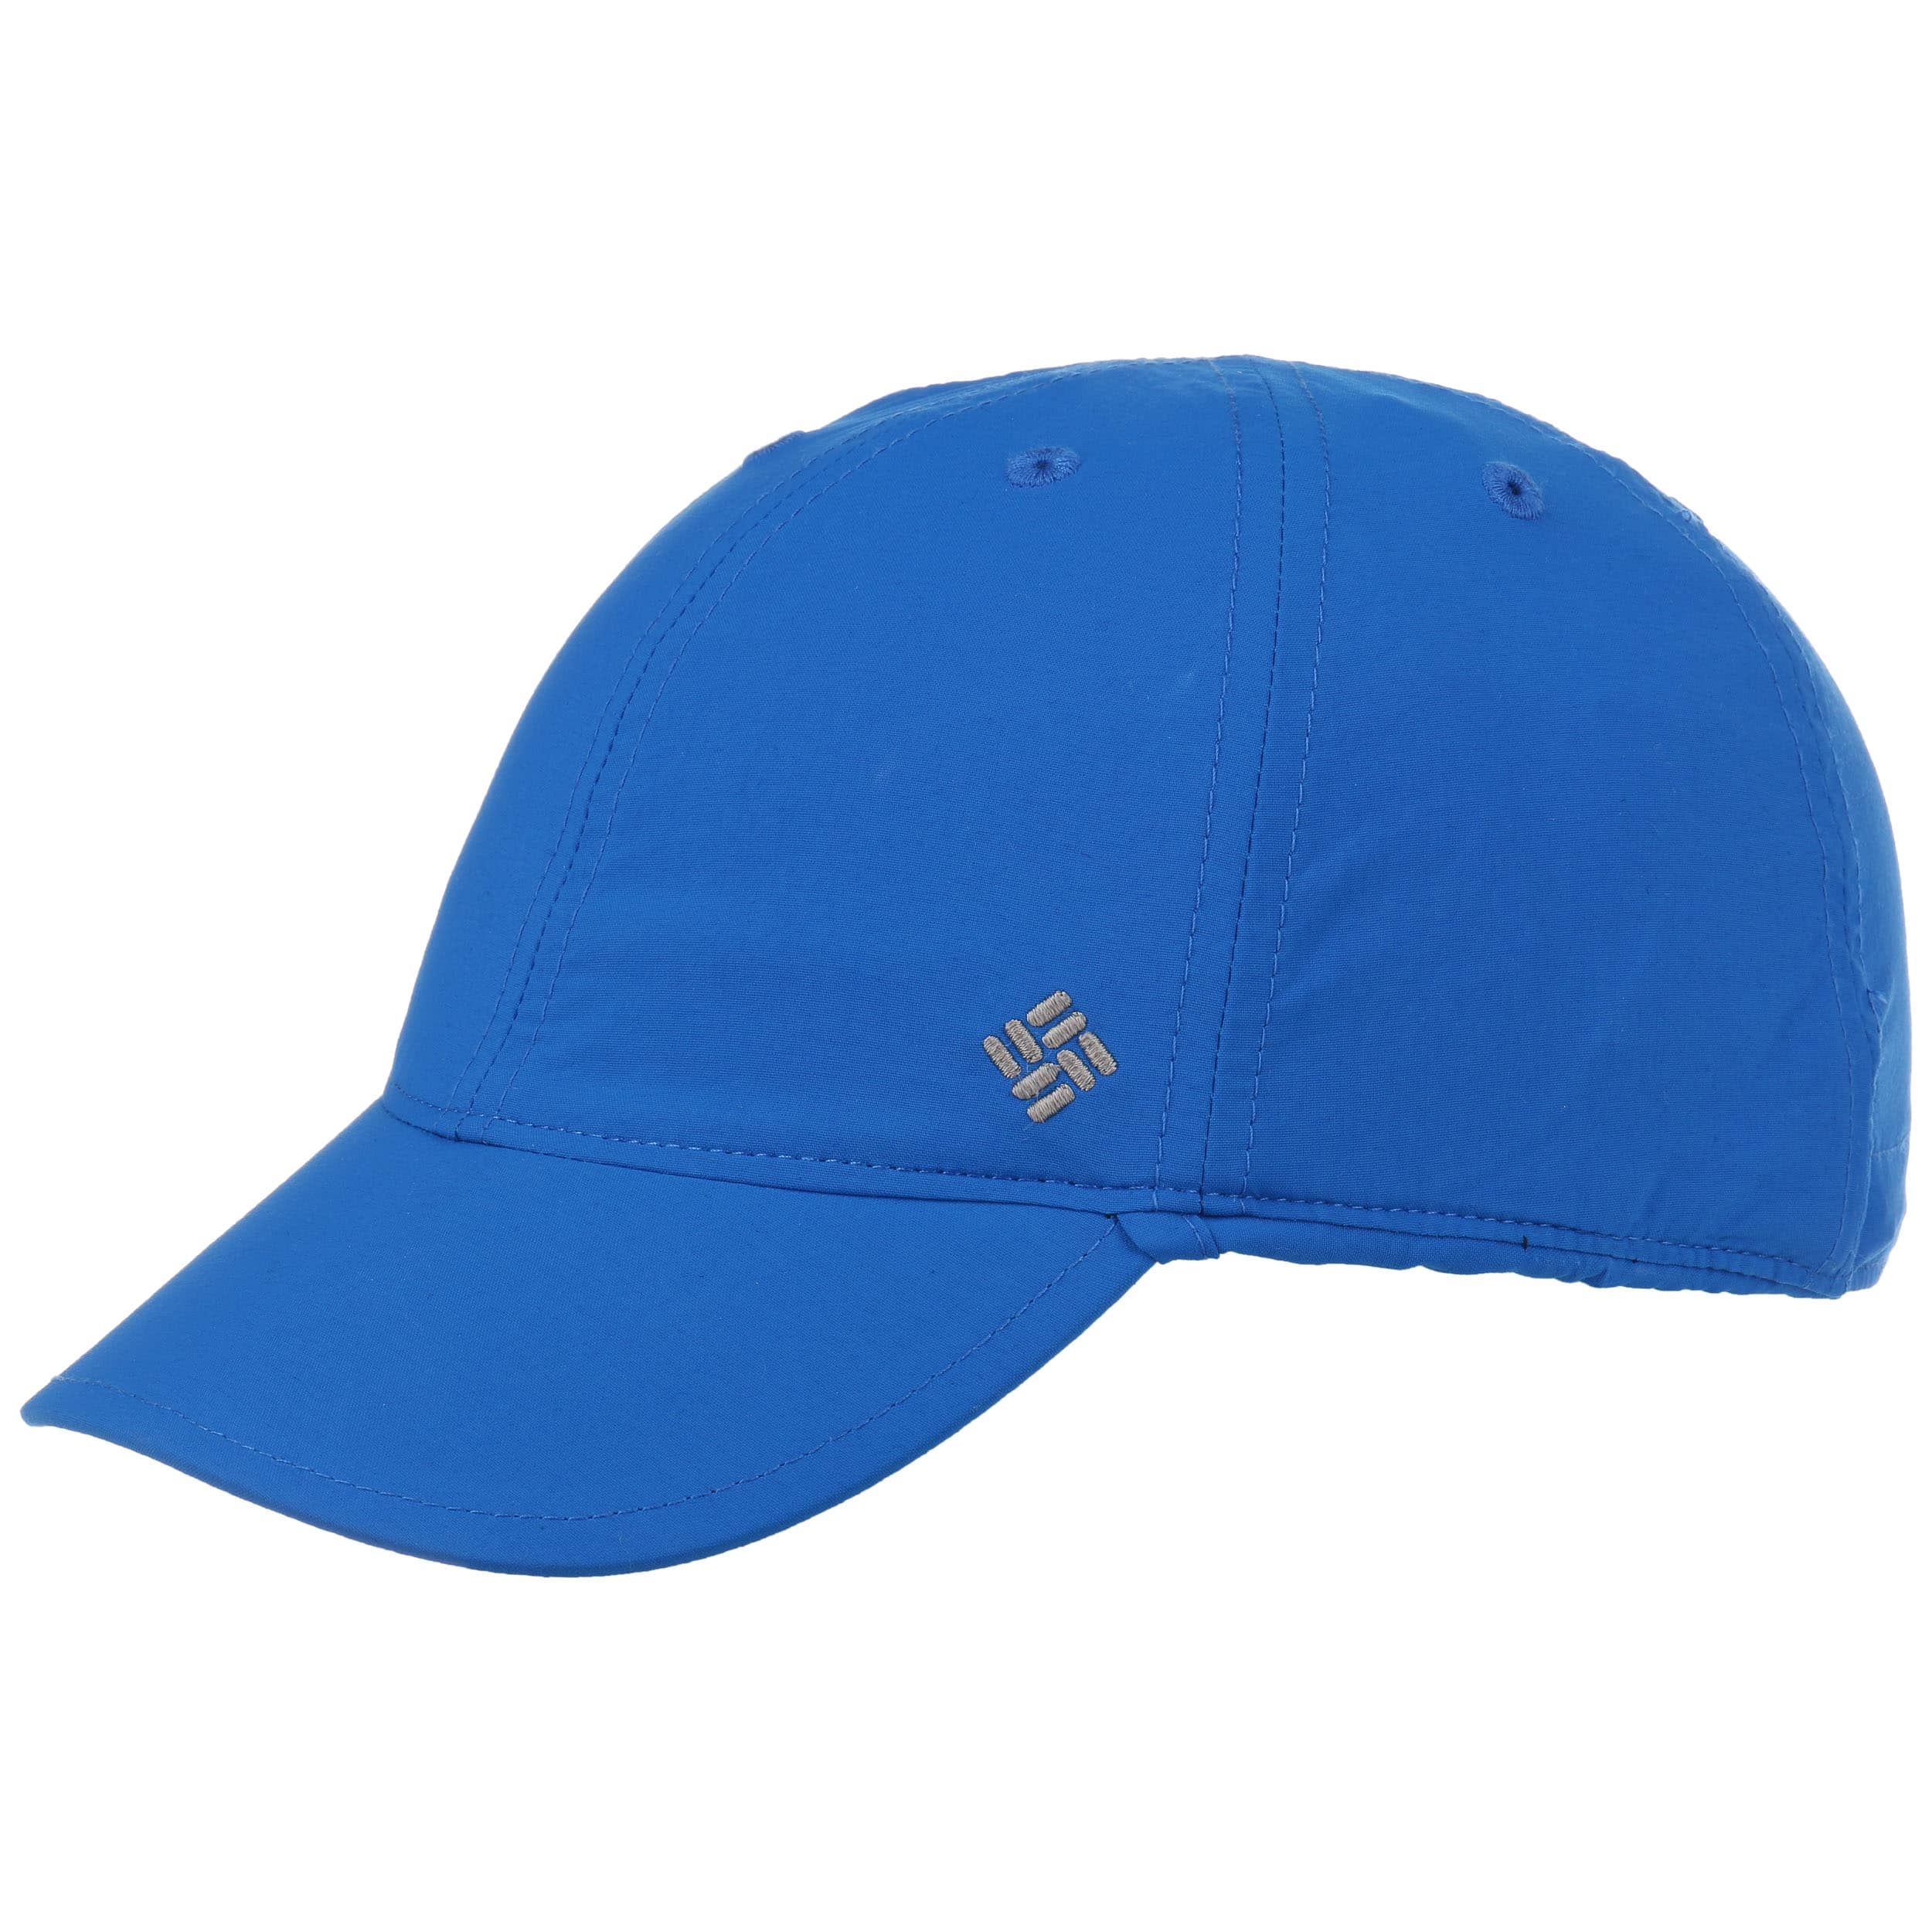 ... Cachalot Junior High UV Cap by Columbia - blue 6 ... 353ee22861d